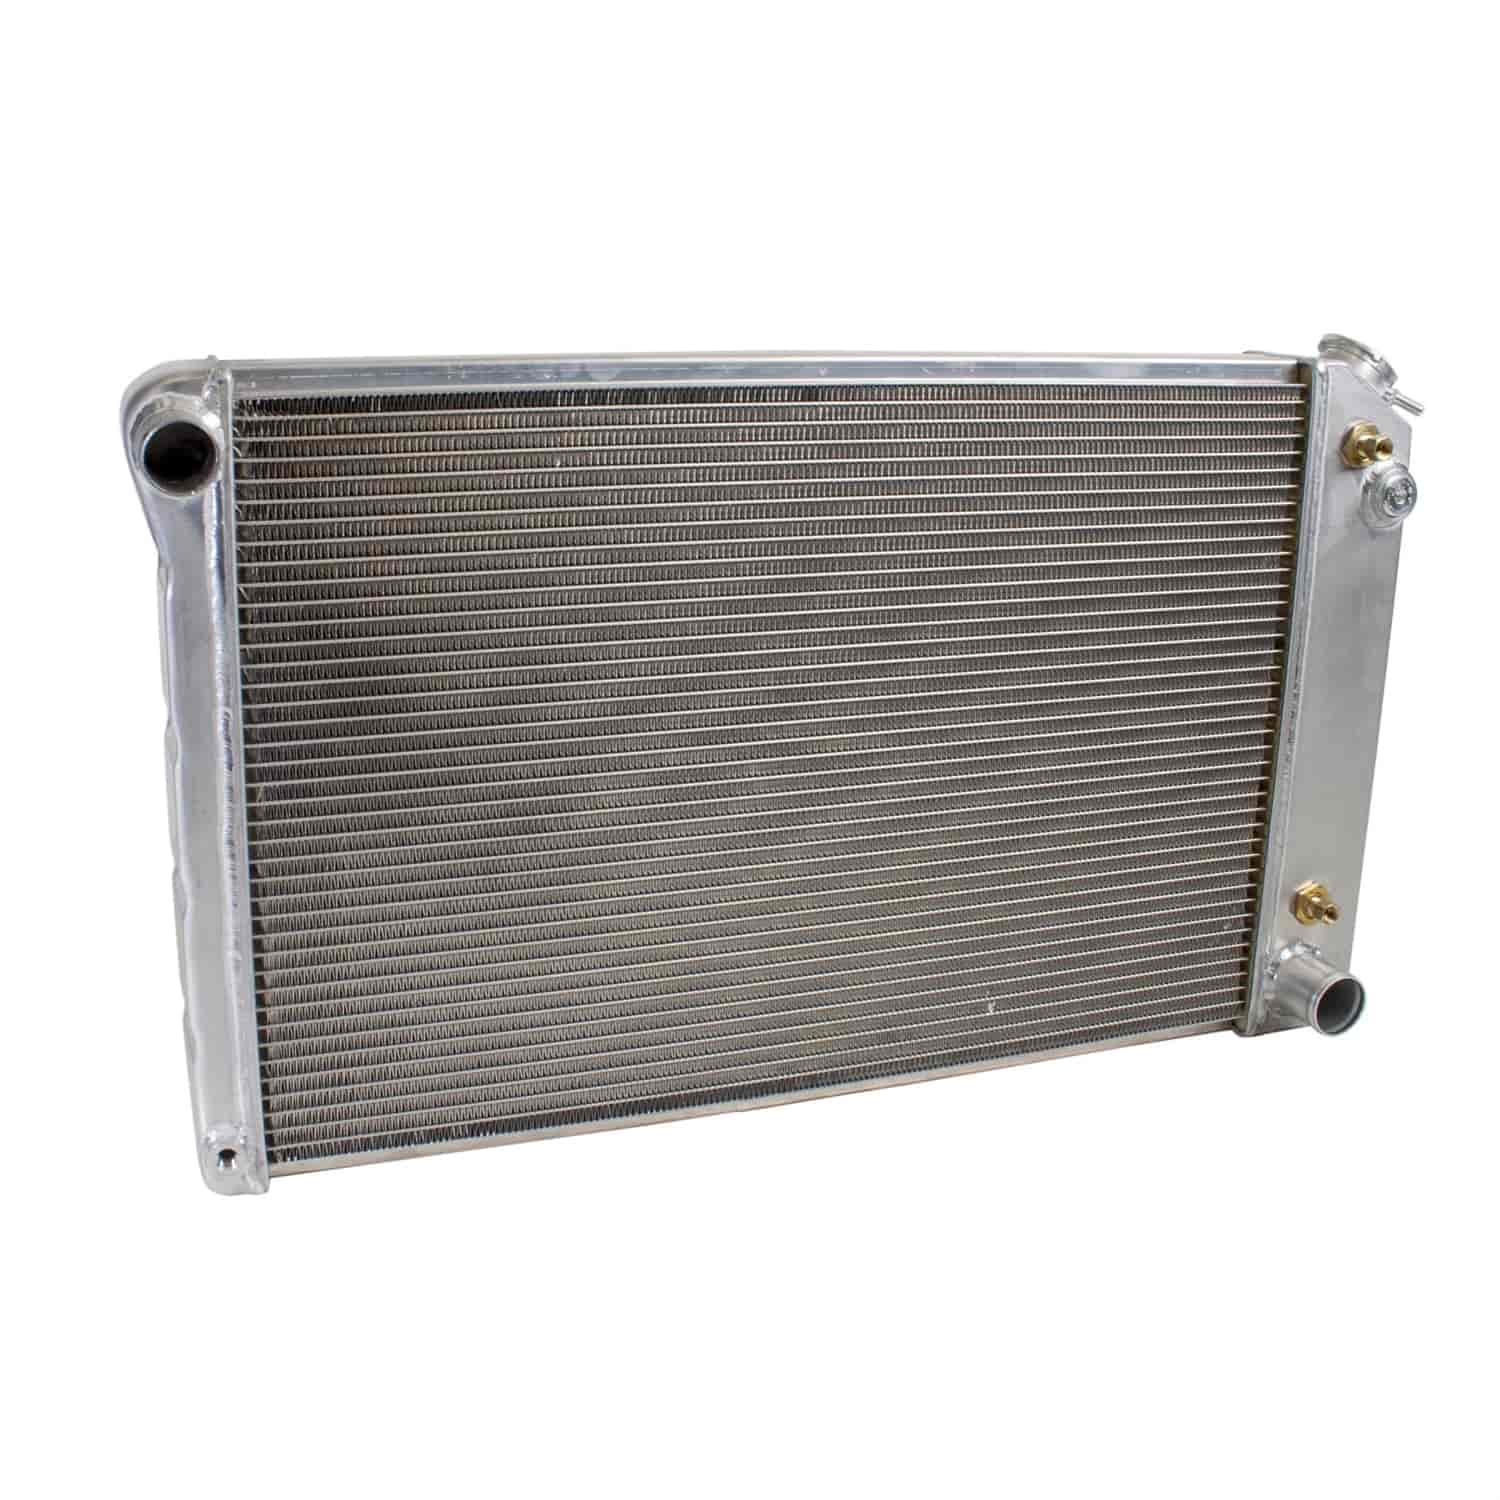 Griffin Radiators 6-70007